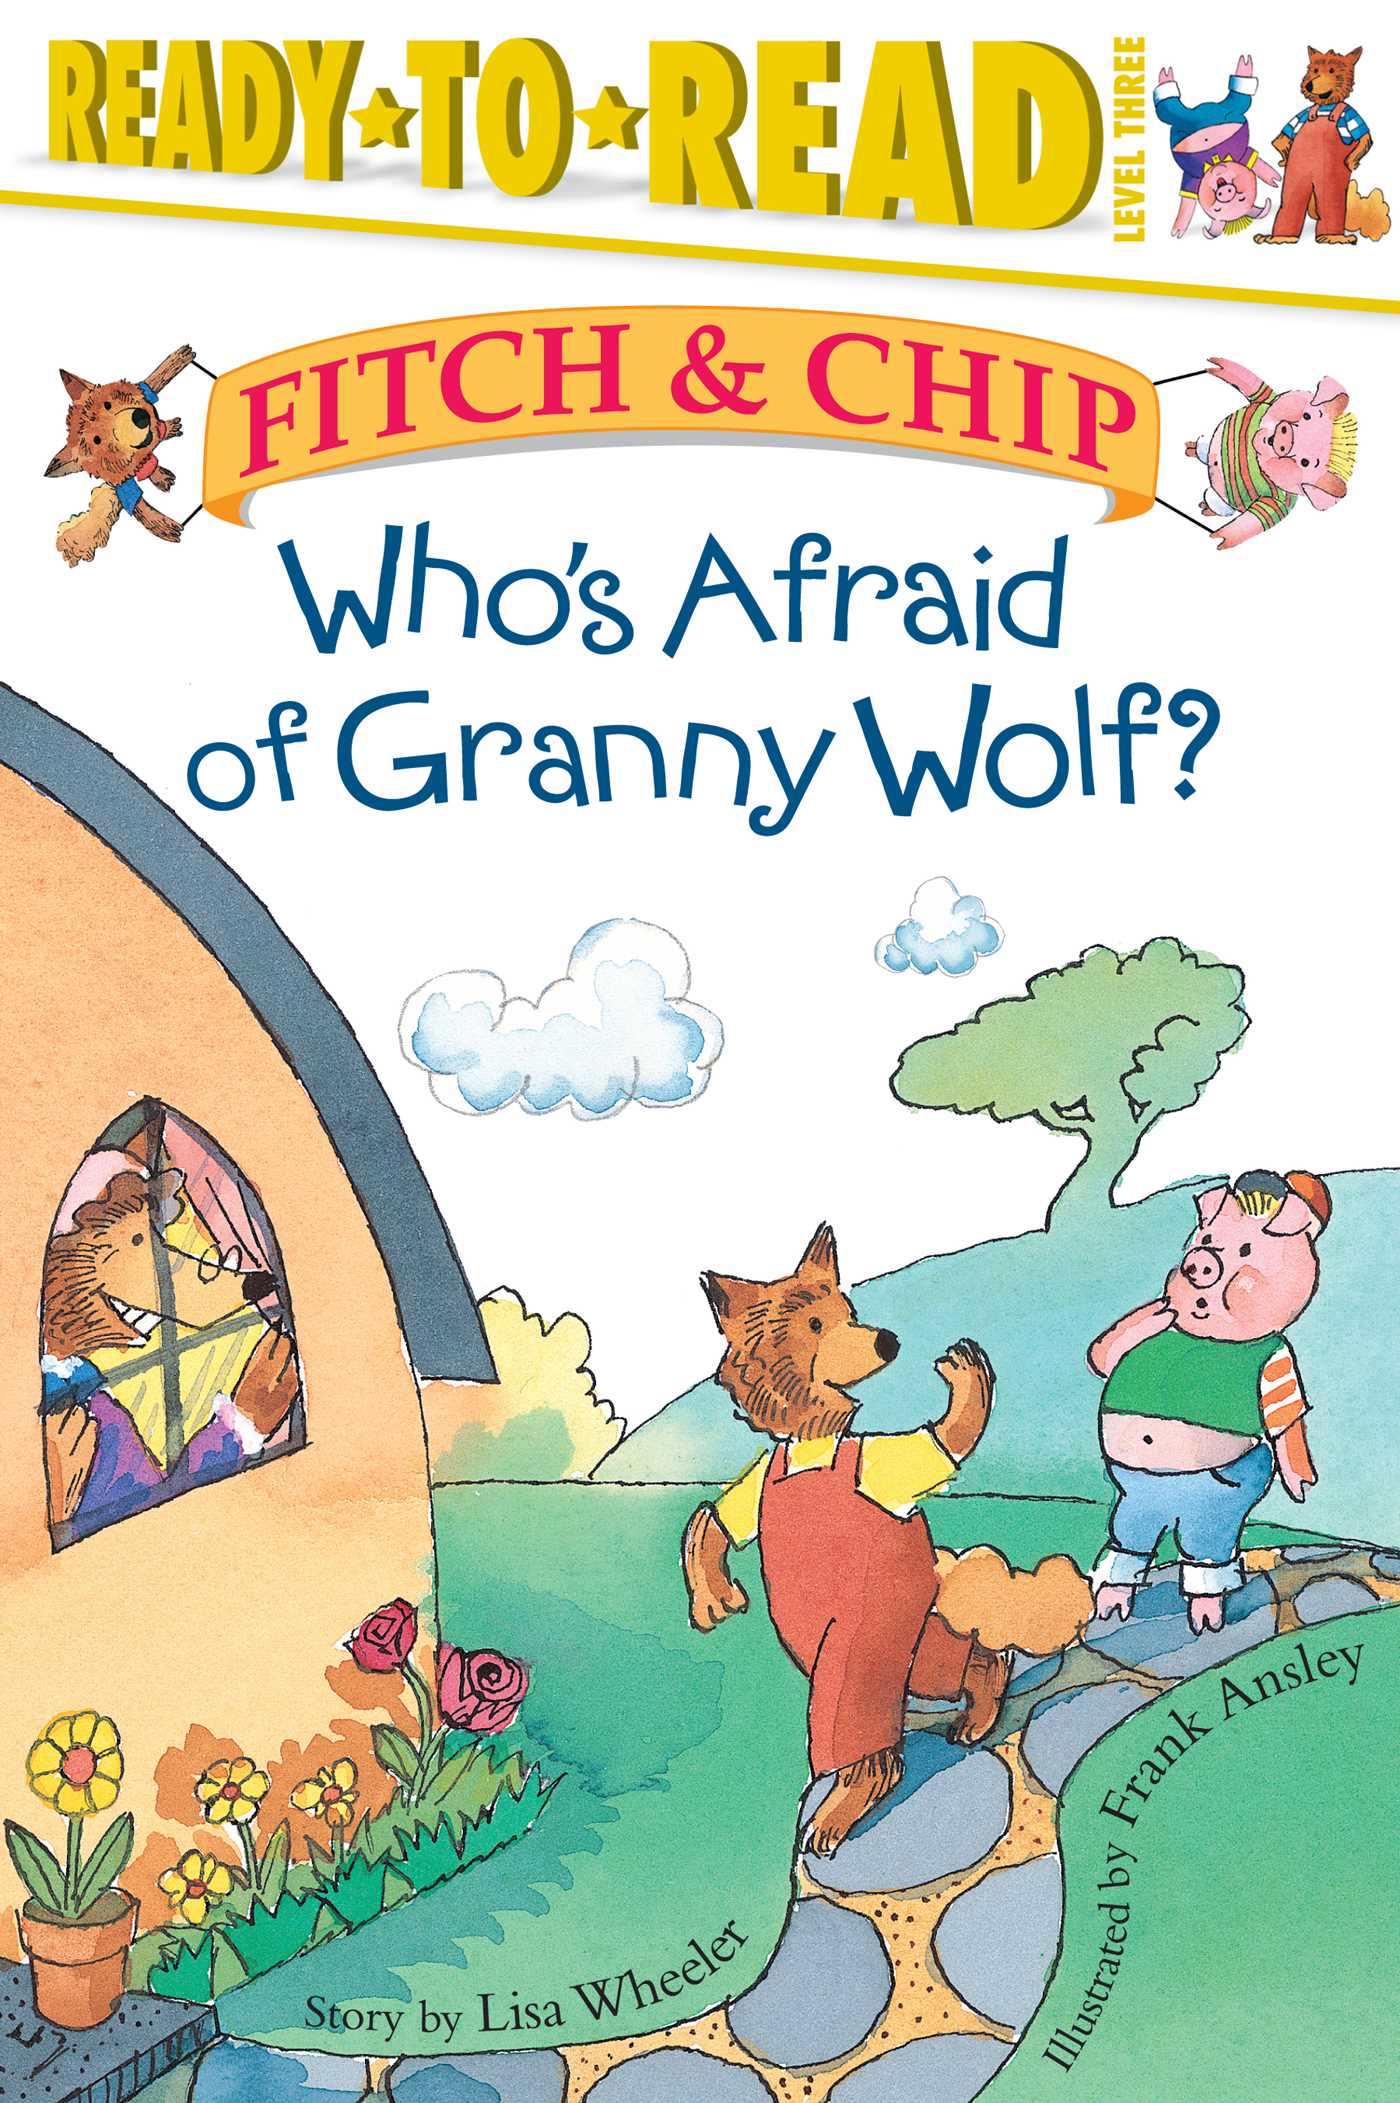 Whos-afraid-of-granny-wolf-9780689849572_hr